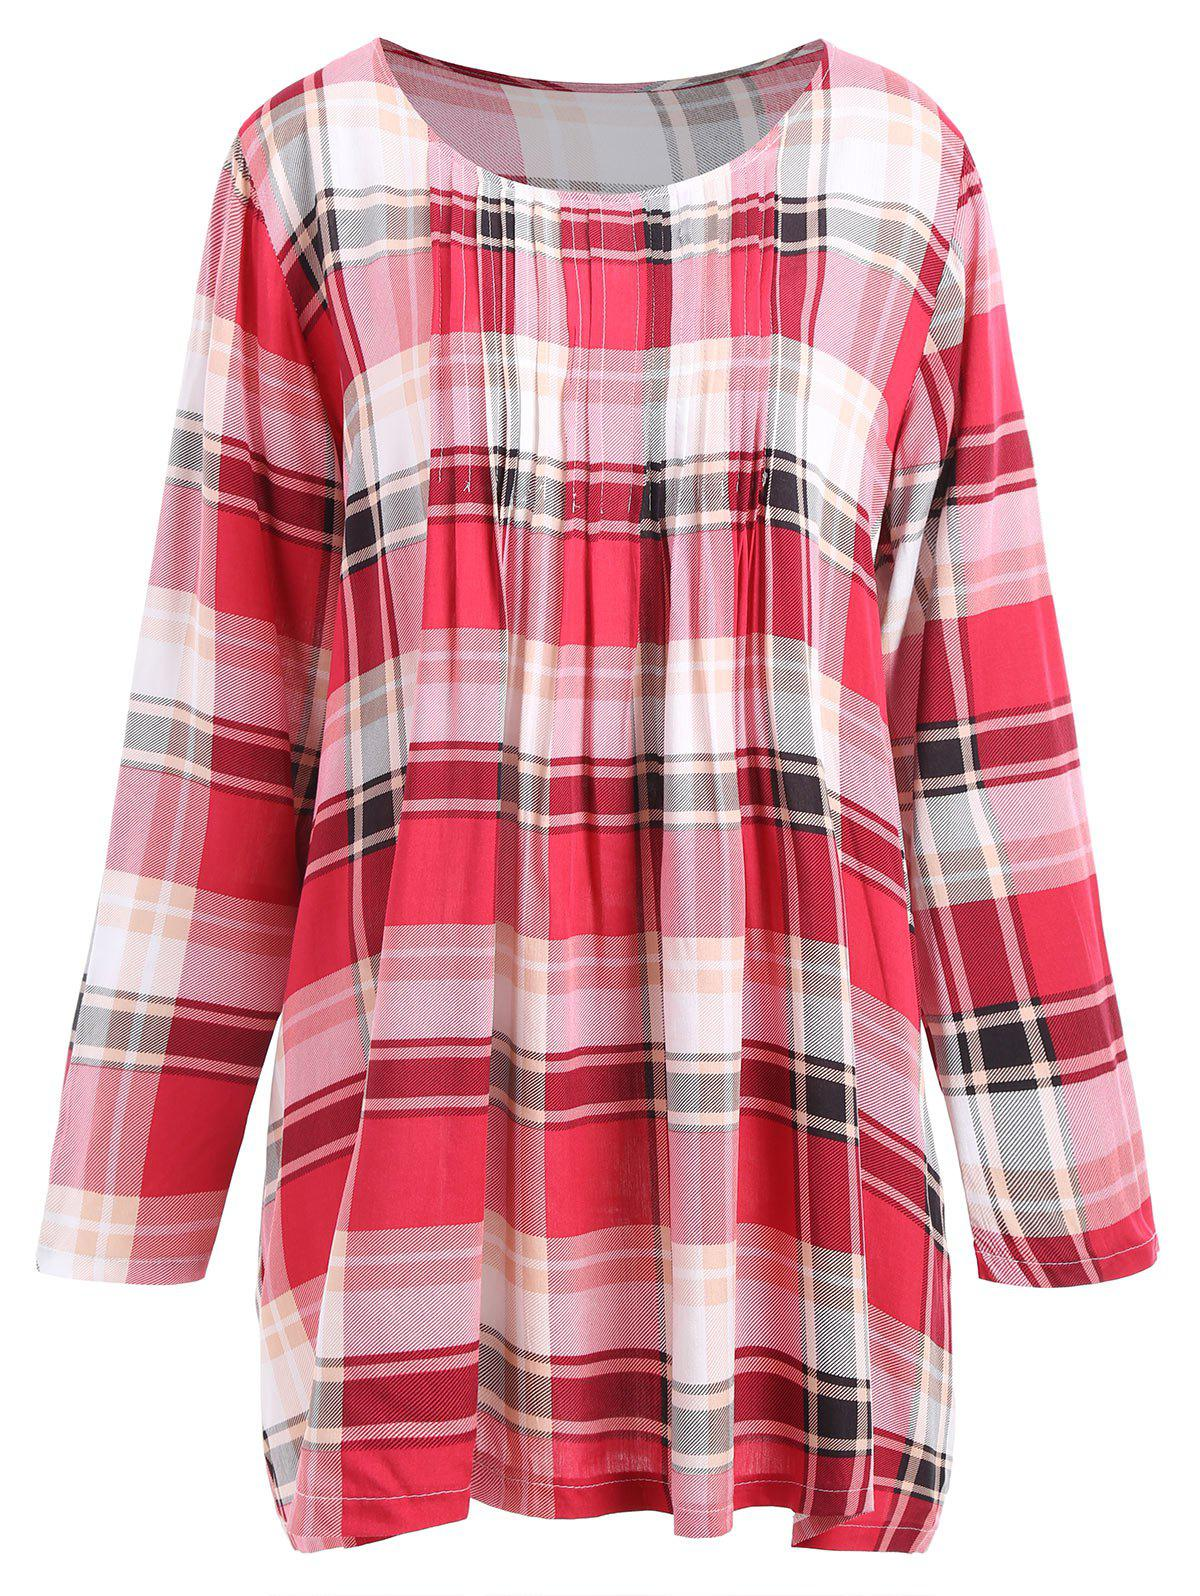 Plus Size Pleated Checked BlouseWOMEN<br><br>Size: 2XL; Color: CHECKED; Material: Polyester; Shirt Length: Long; Sleeve Length: Full; Collar: Round Neck; Style: Casual; Season: Fall; Embellishment: Pleated; Pattern Type: Plaid; Weight: 0.2200kg; Package Contents: 1 x Blouse;